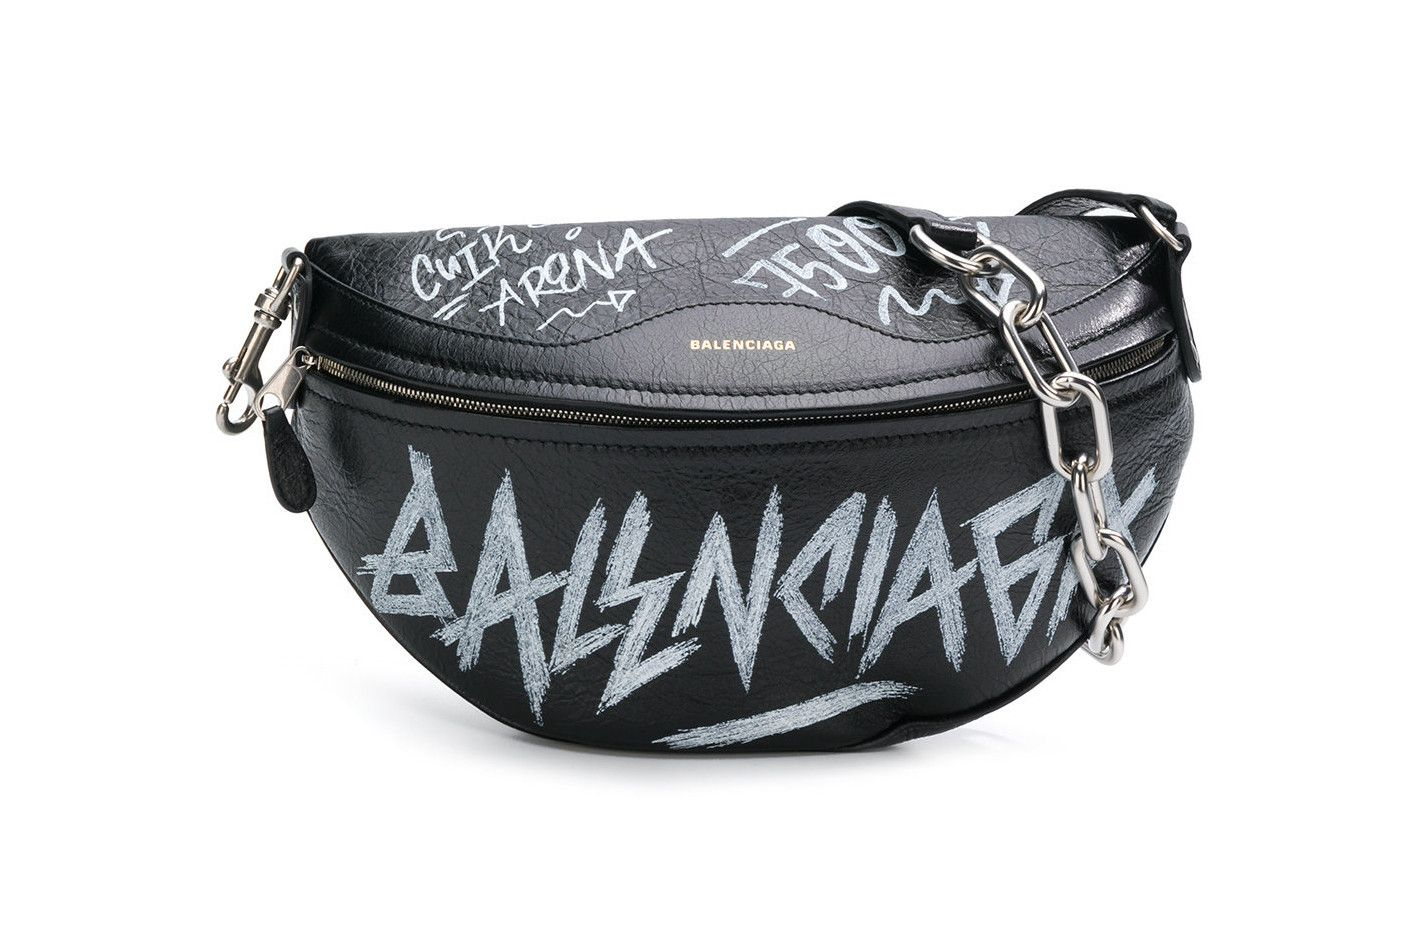 7a2fc5ff69e6 Balenciaga's Souvenir Belt Bag Gets Covered in Graffiti in 2019 ...